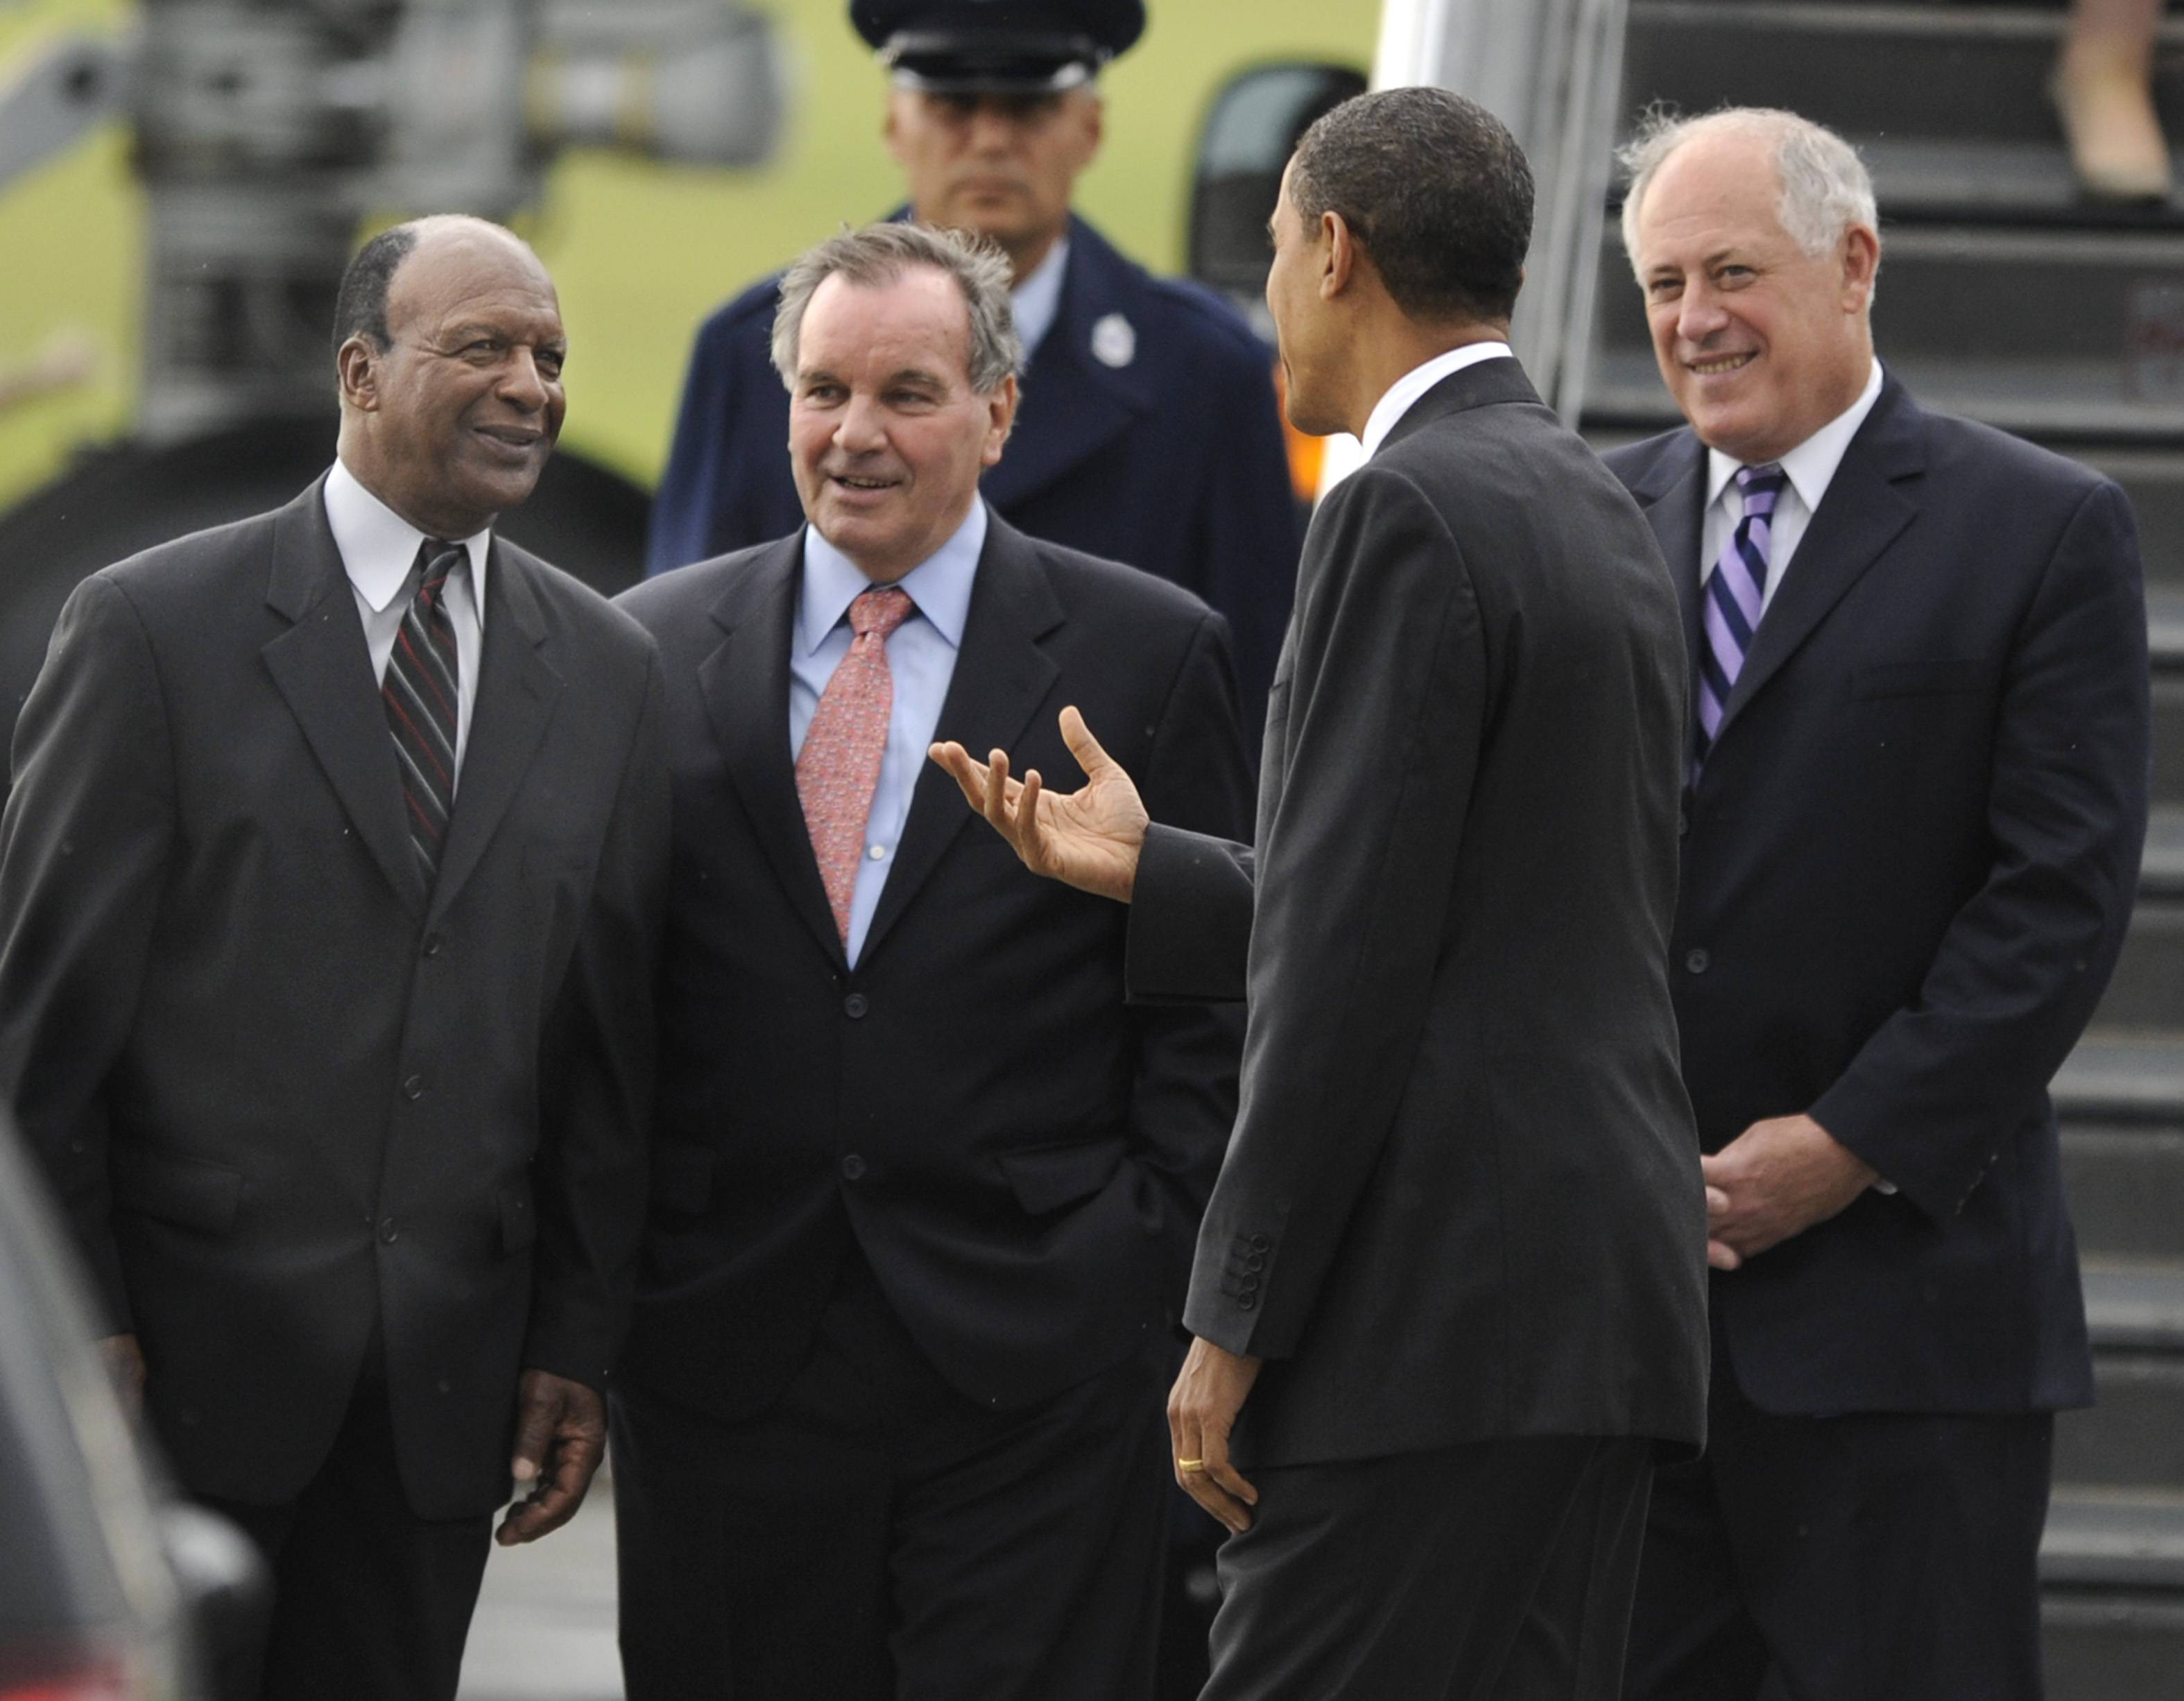 President Barack Obama, right, is greeted by Illinois Secretary of State Jesse White, left, Chicago Mayor Richard M. Daley, center, and Illinois Gov. Pat Quinn after arriving at O'Hare Airport in Chicago.